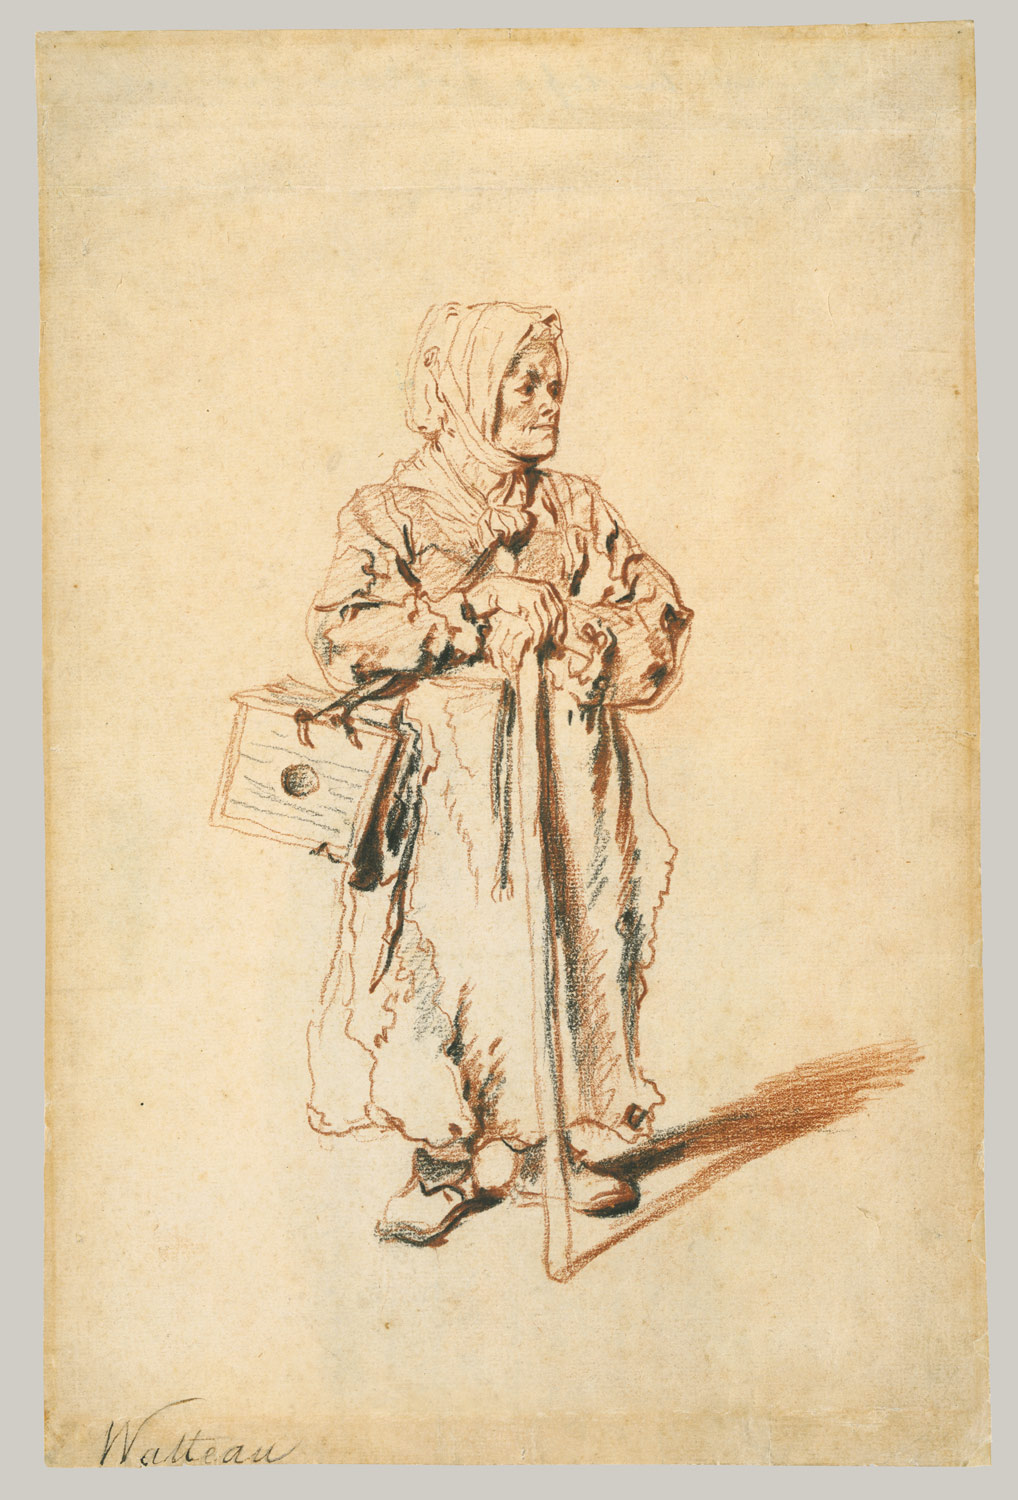 The Old Savoyarde,, 1715, Antoine Watteau, red and black chalk (image courtesy of The Metropolitan Museum).